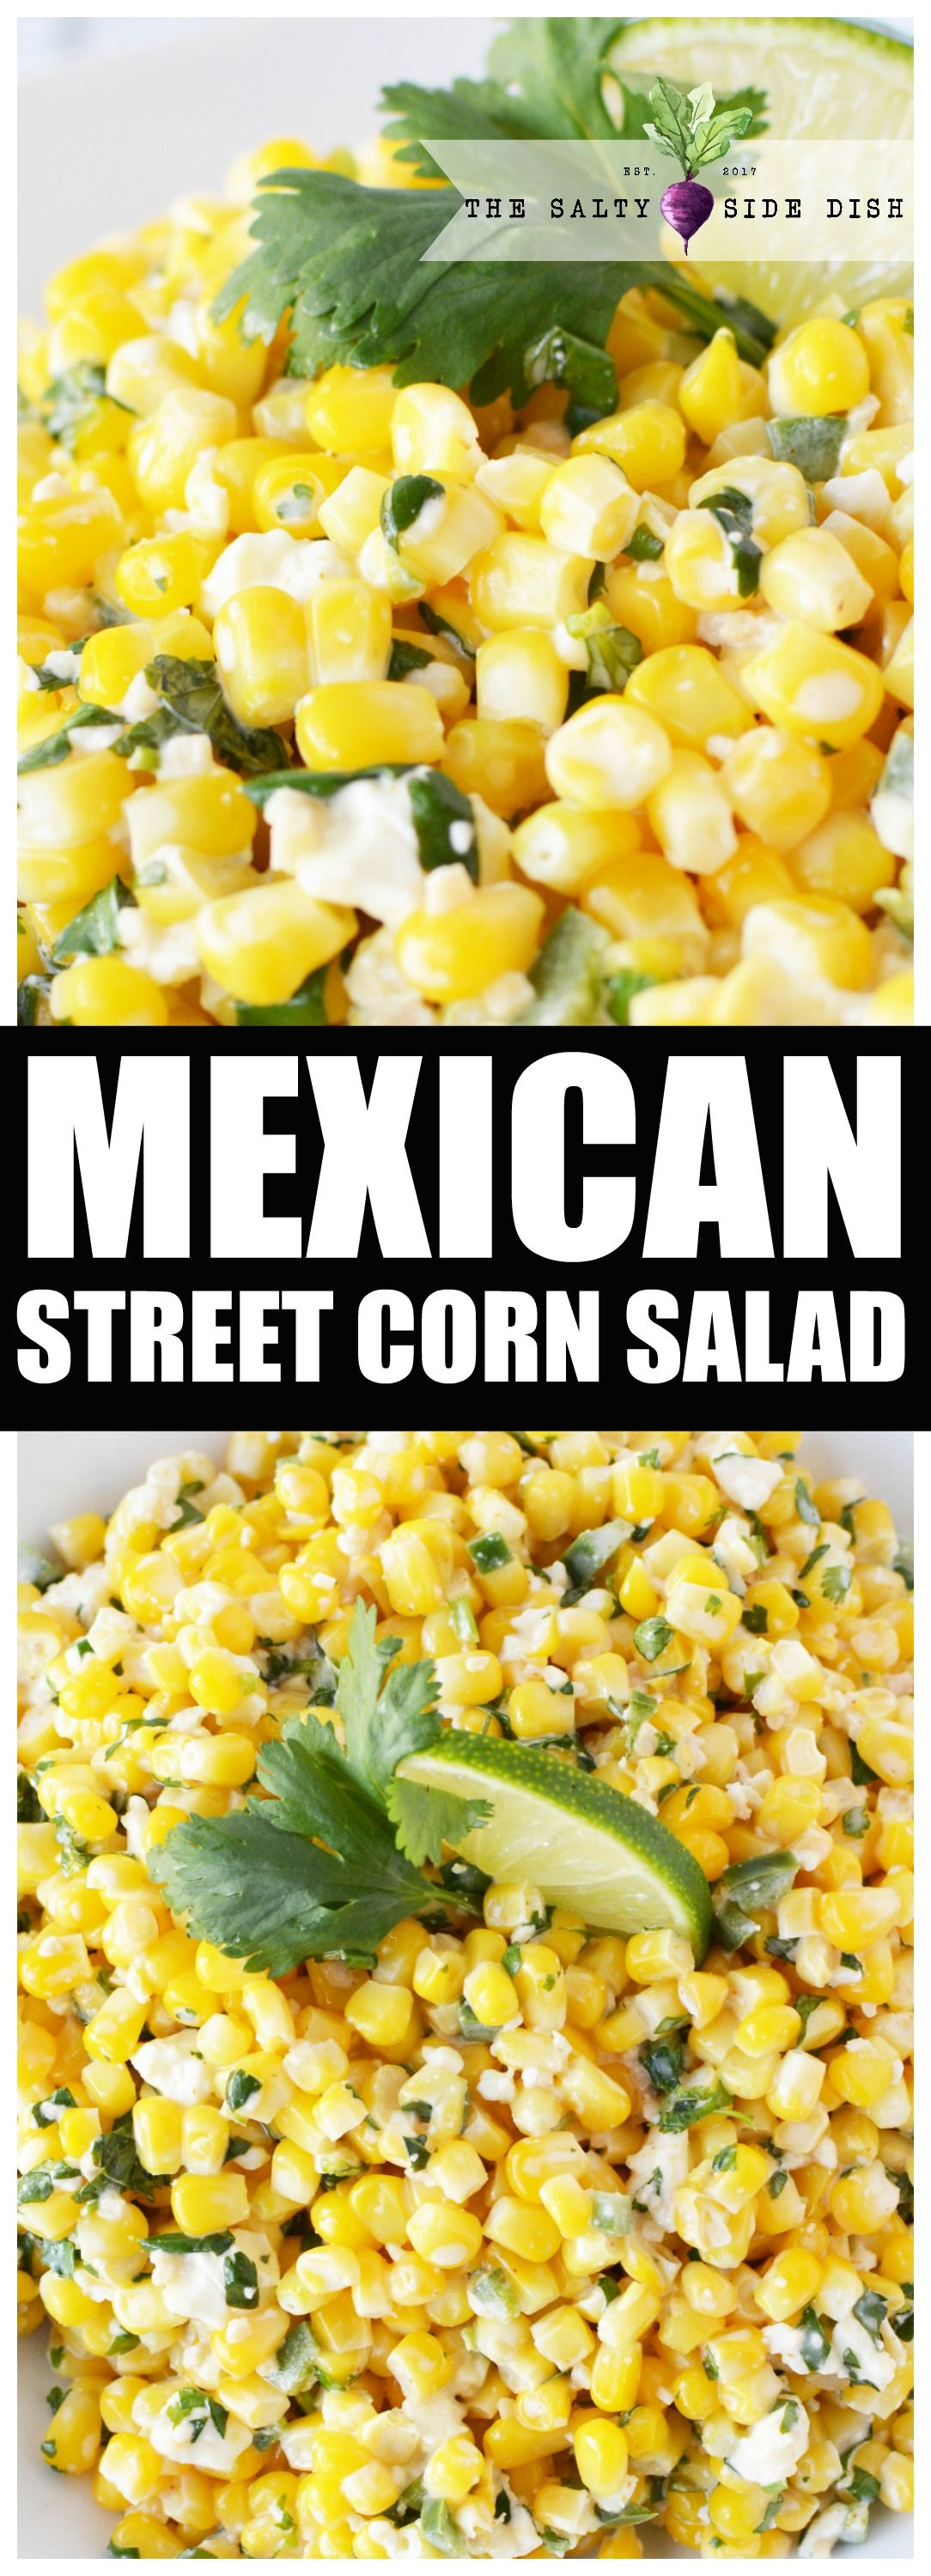 Mexican Street Corn Salad | Mexican Street Corn Salad skips the taco truck and lands a perfect corn side dish right on your plate. Under 15 minutes for a tangy simple salad that is perfect for pot luck. #tacosidedishes